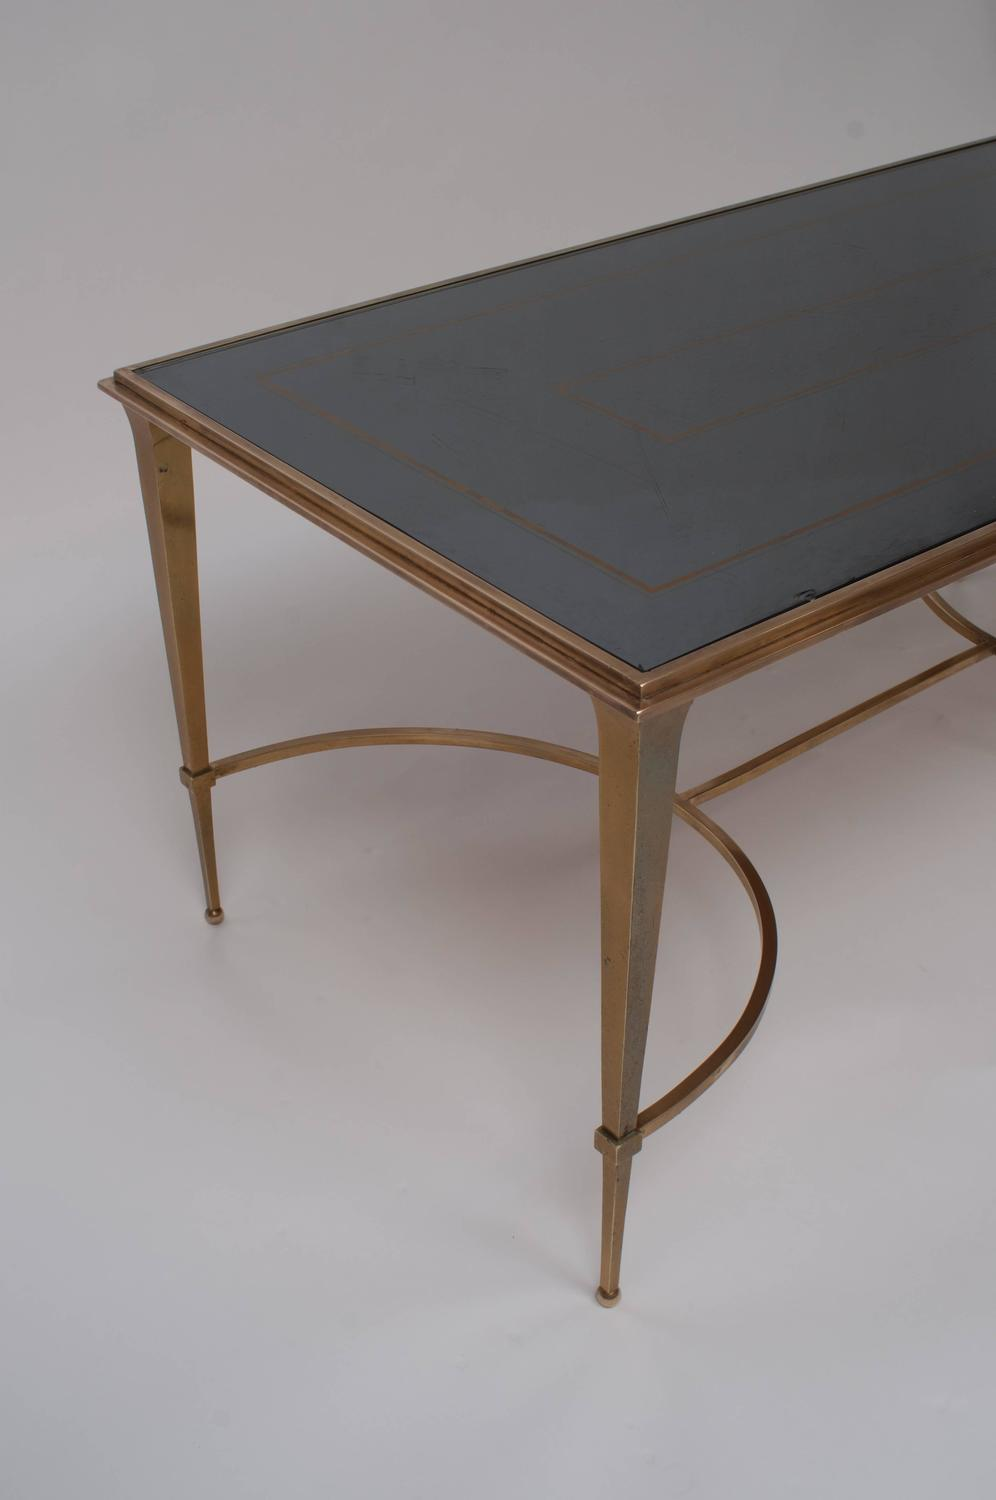 Maison Ramsay Bronze Coffee Table With Mirrored Top Circa 1950 For Sale At 1stdibs